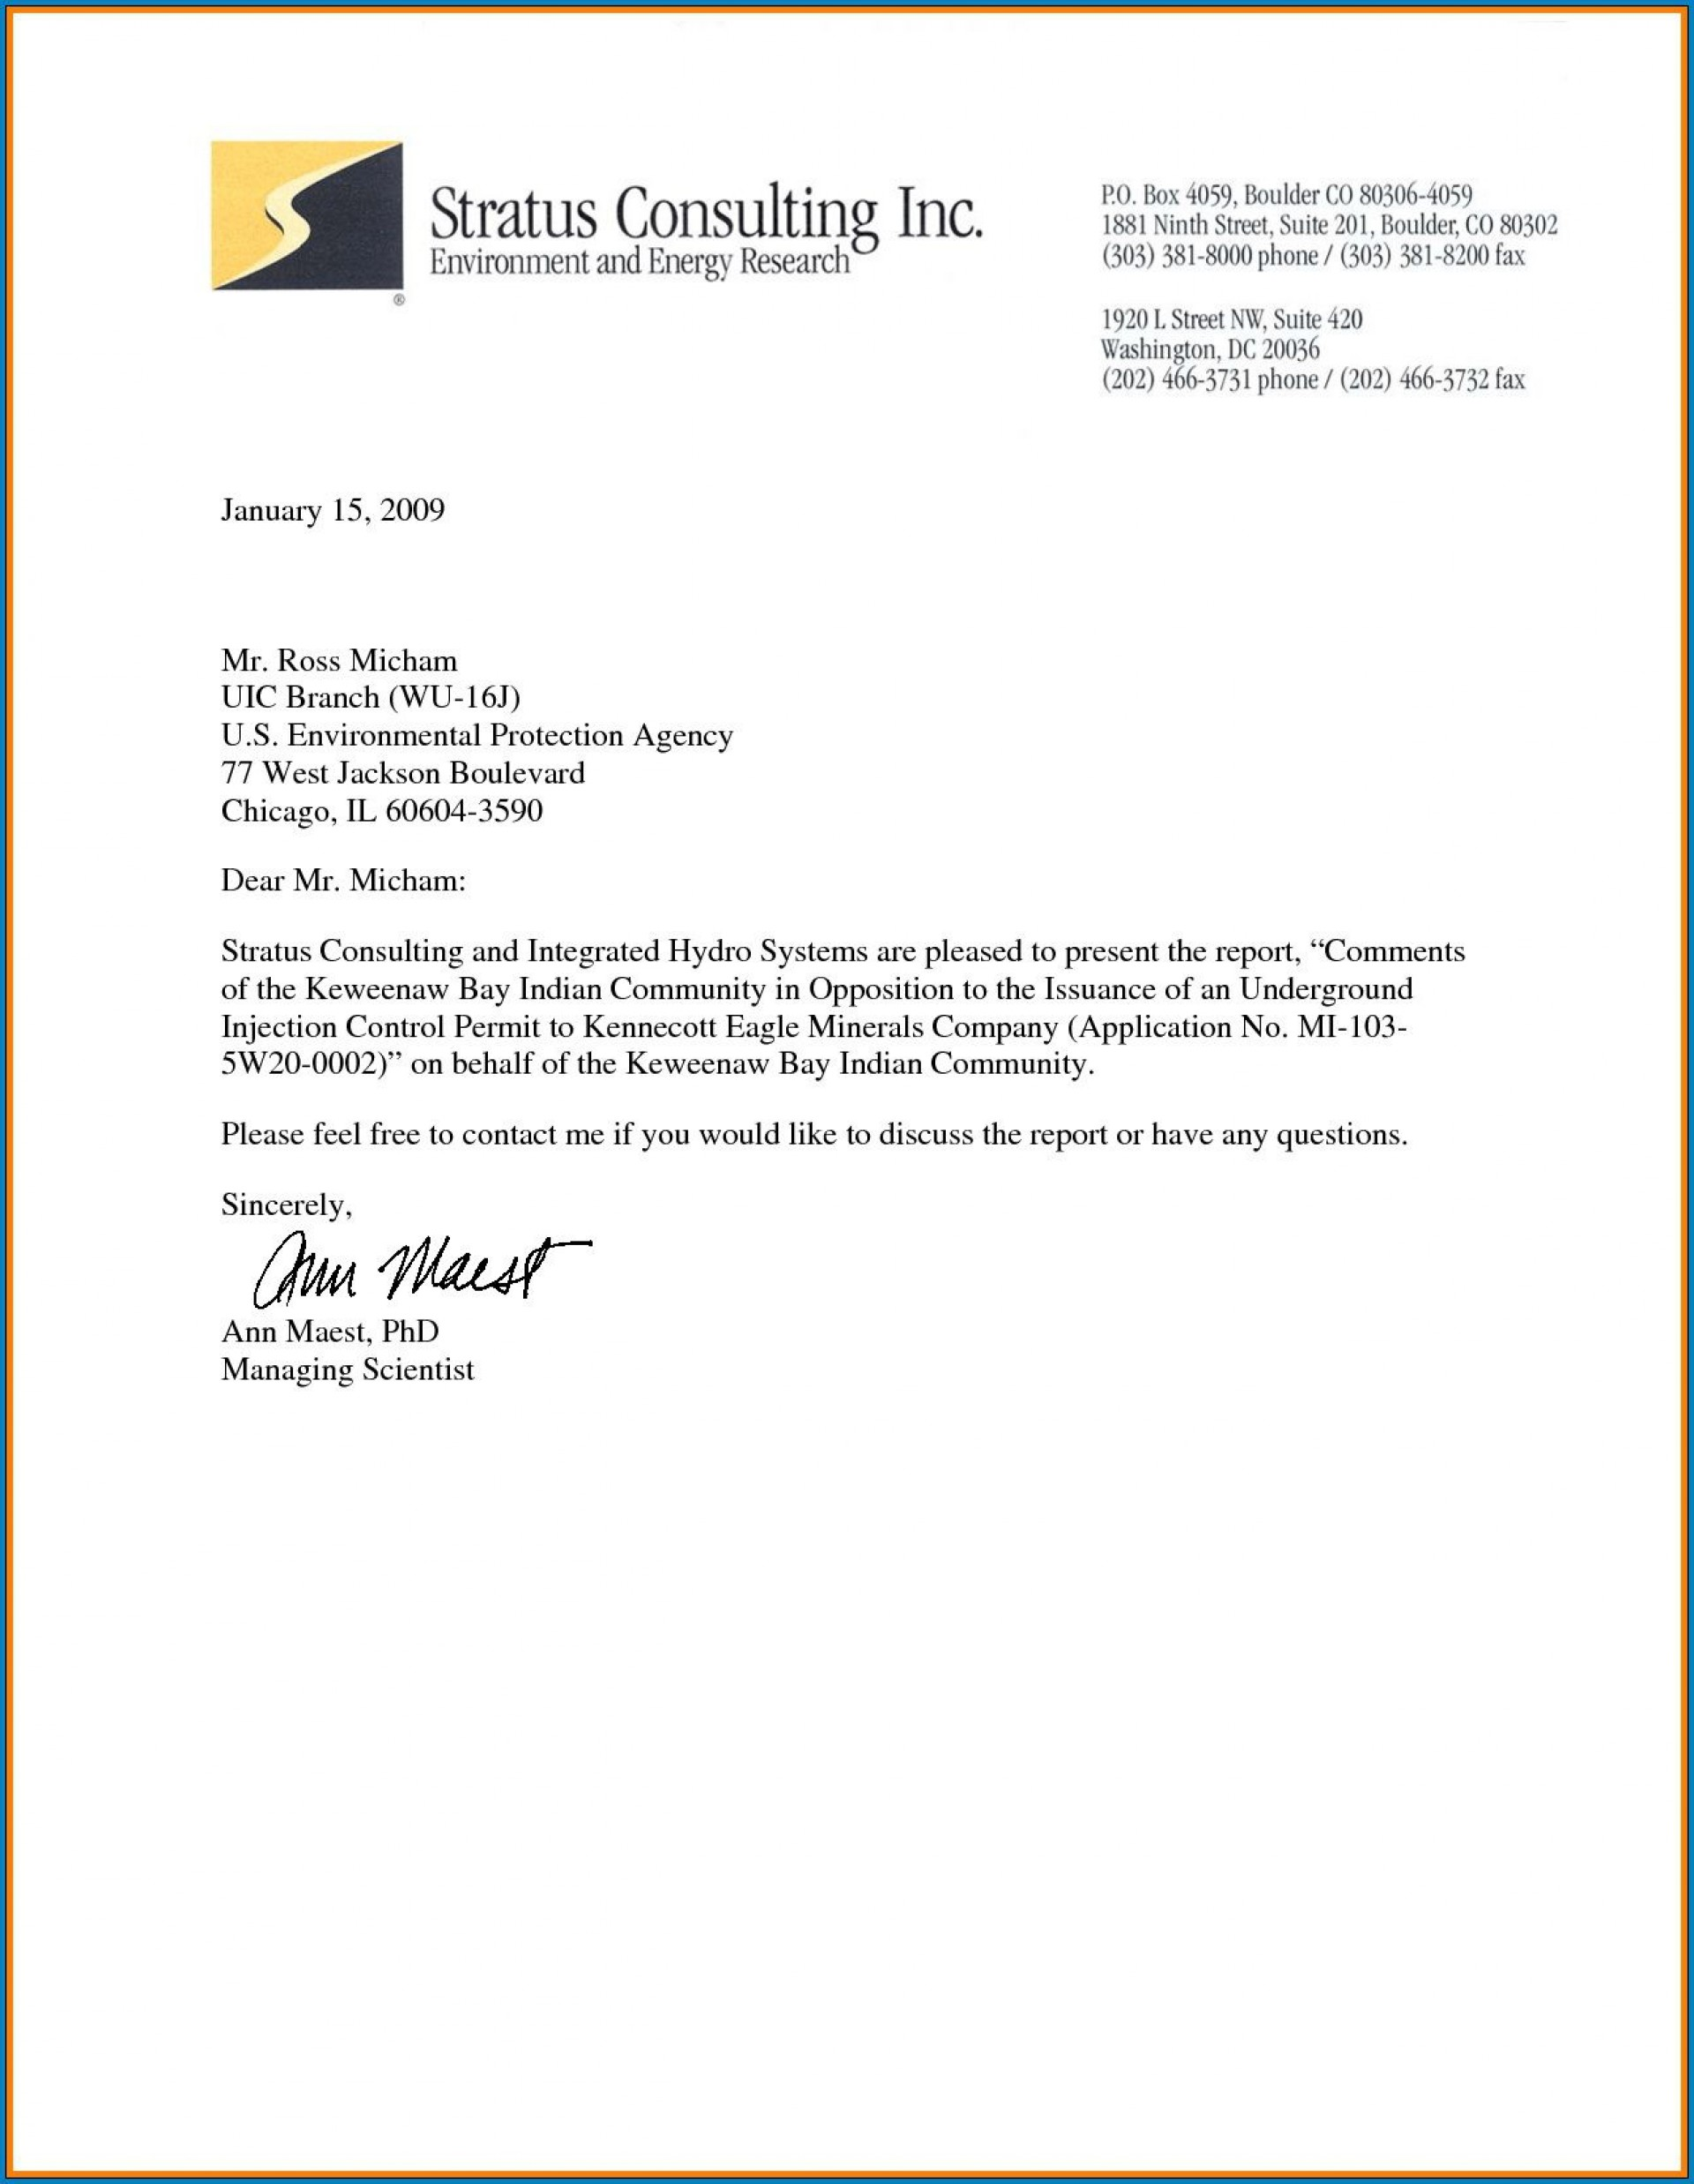 002 Staggering Sample Busines Letter Template Inspiration  Of Intent Formal Free1920